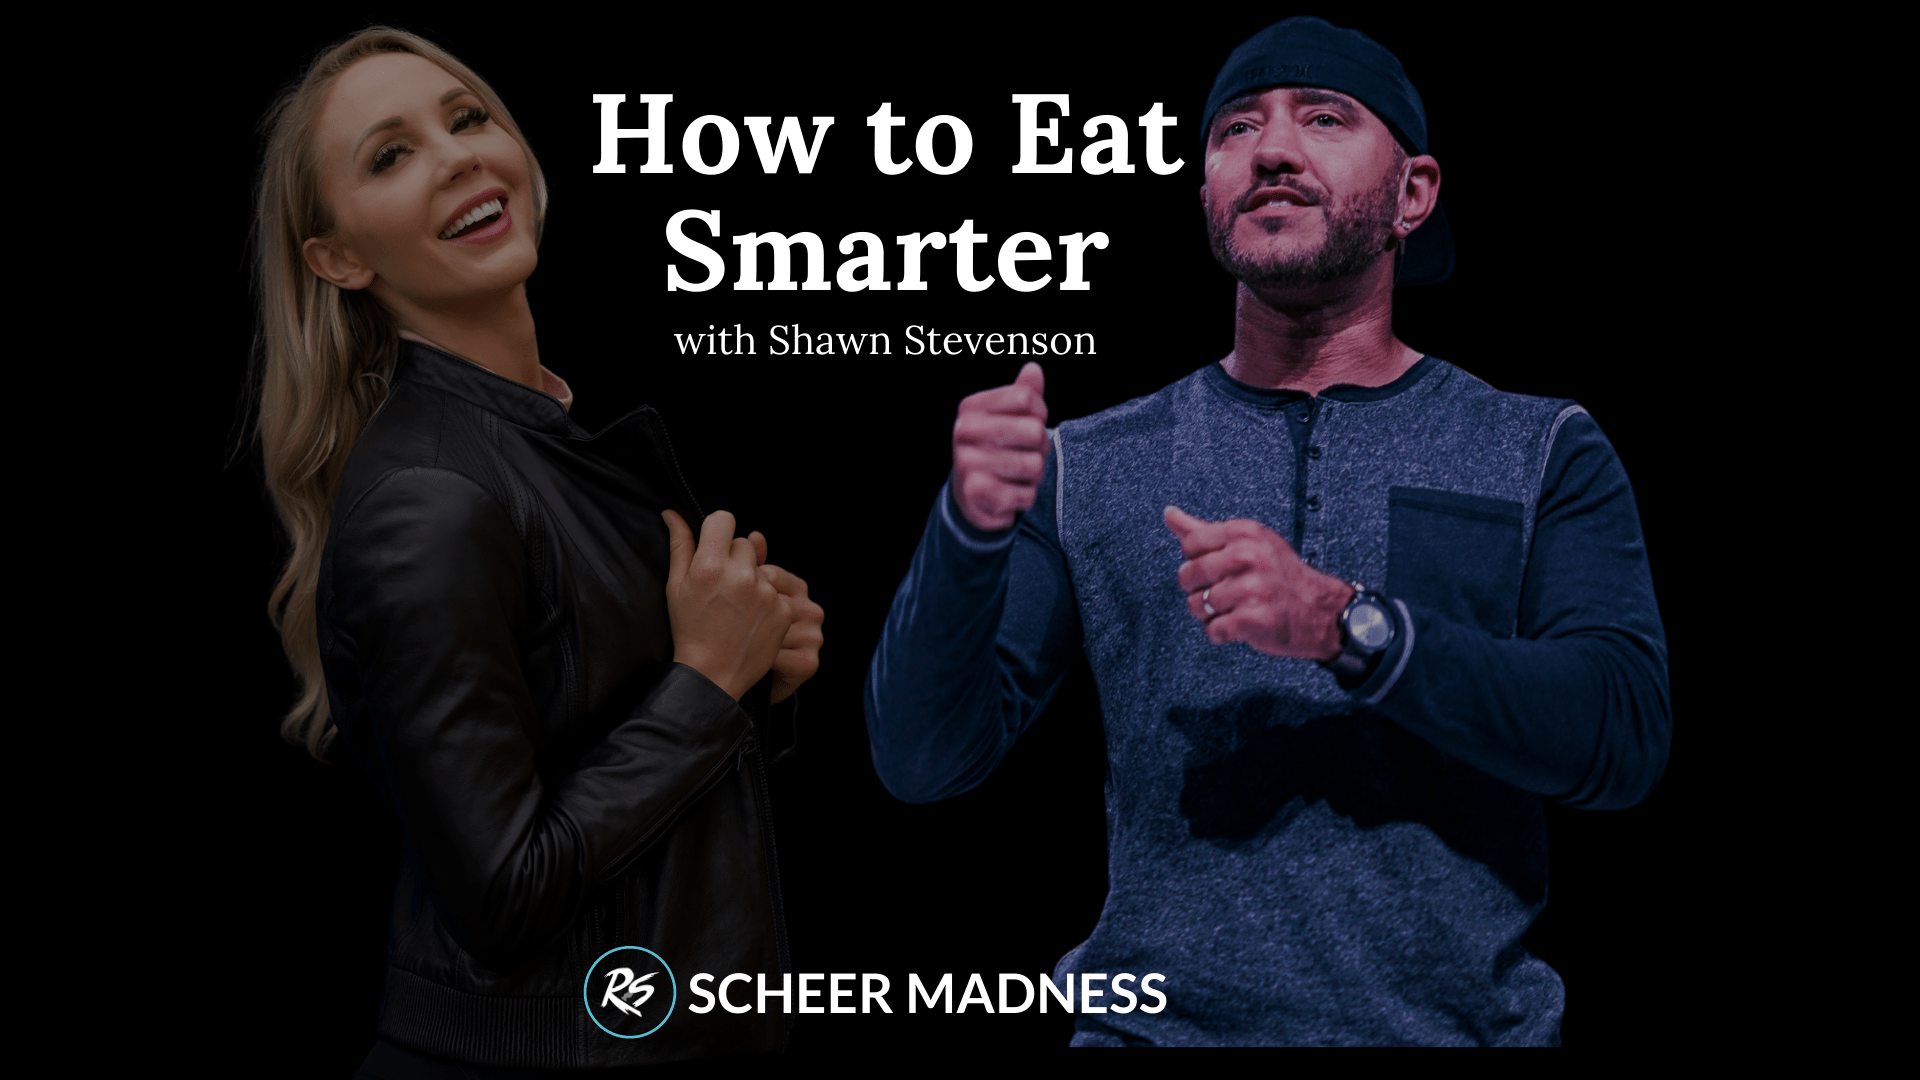 How to Eat Smart with Shawn Stevenson